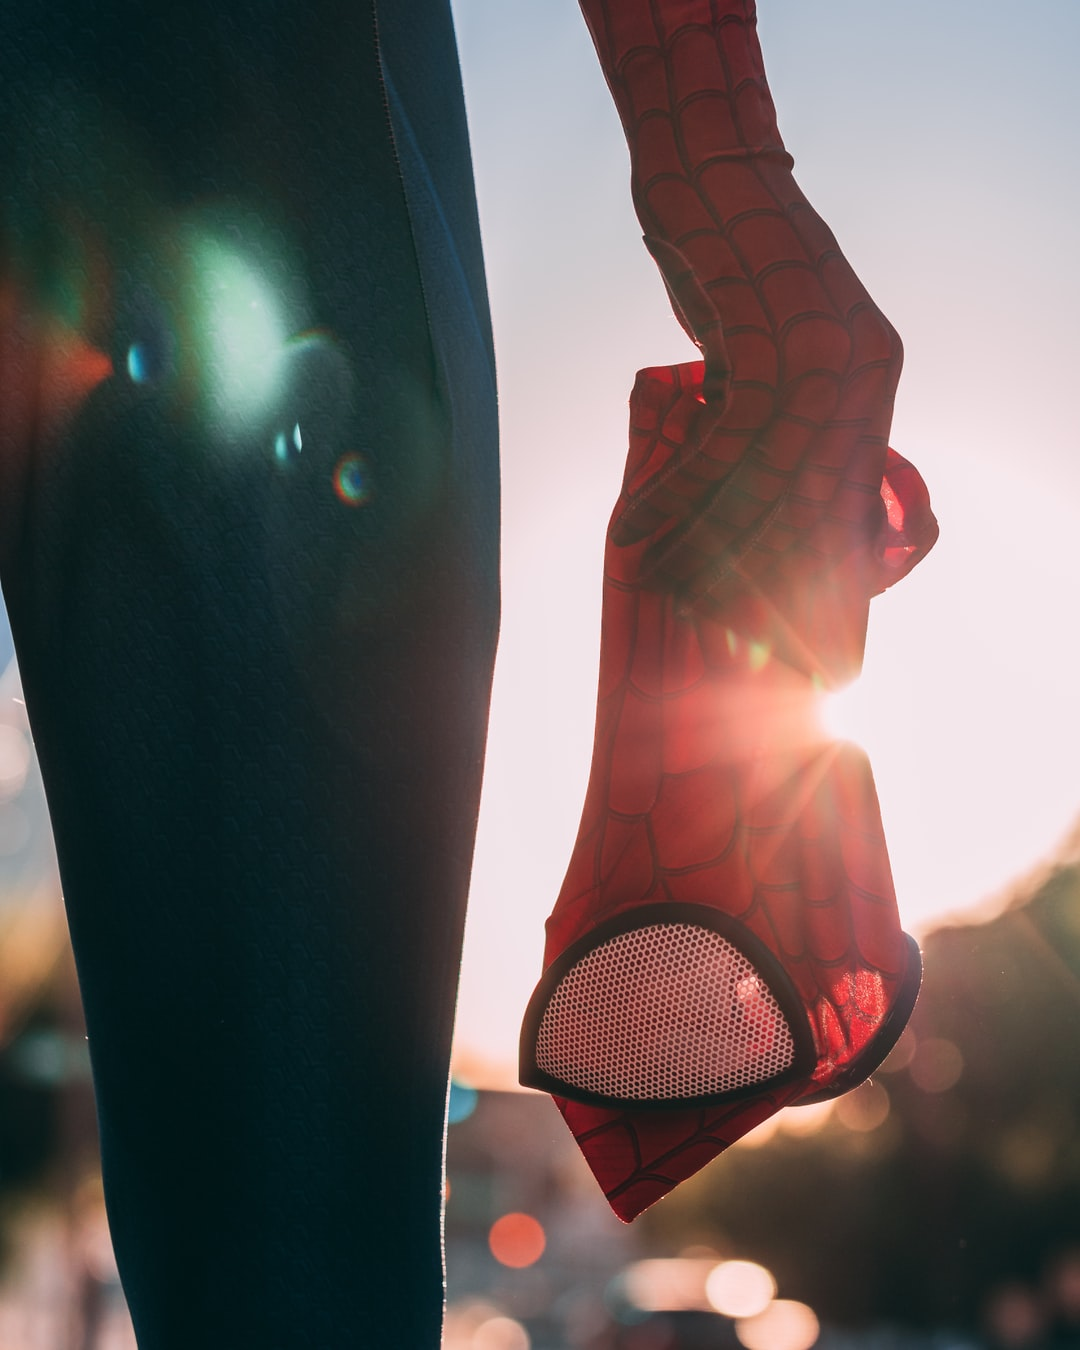 100+ Spiderman Pictures [HD]   Download Free Images on Unsplash